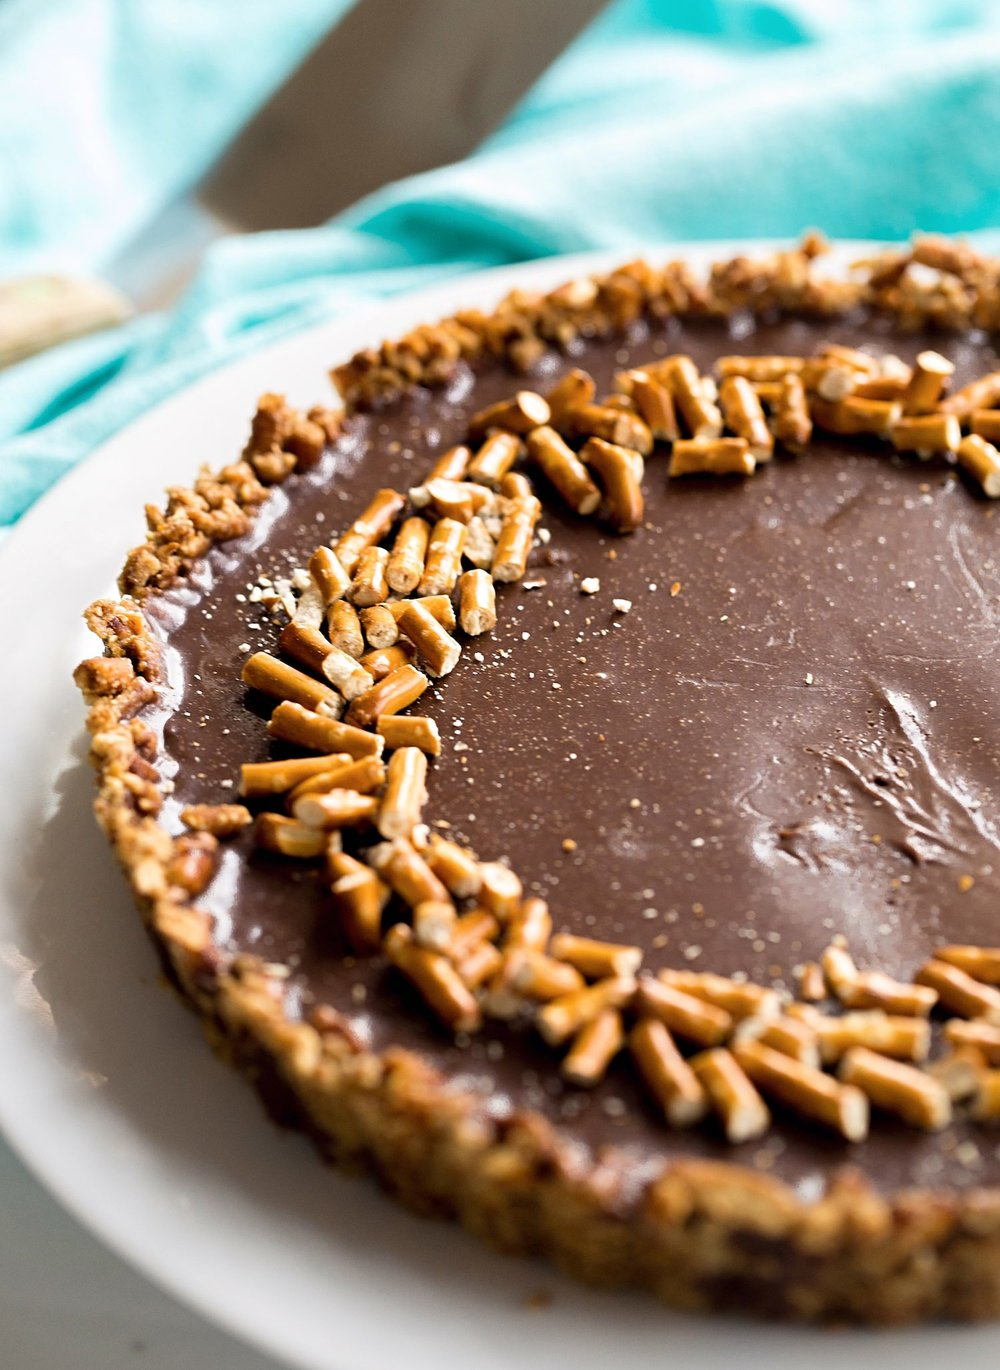 Pretzel Crust Milk Chocolate Tart: a crunchy, salty and sweet pretzel crust filled with a rich, creamy, milk chocolate ganache. Too good! | TrufflesandTrends.com